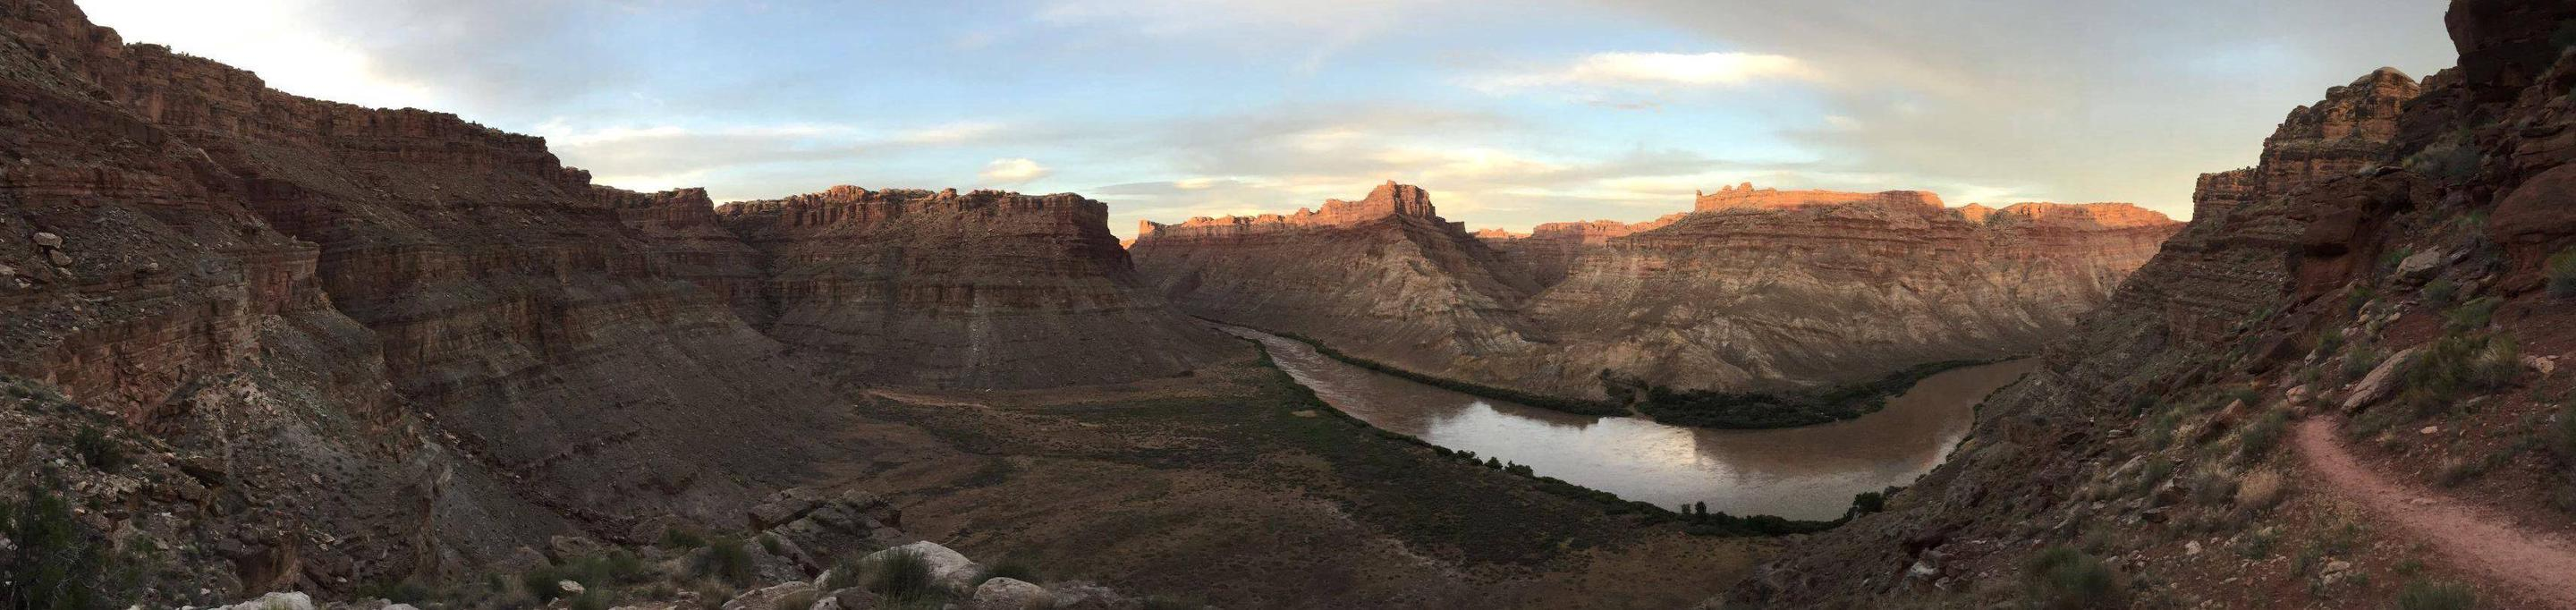 Confluence of the Green and Colorado RiversConfluence of the Green and Colorado Rivers, Canyonlands National Park